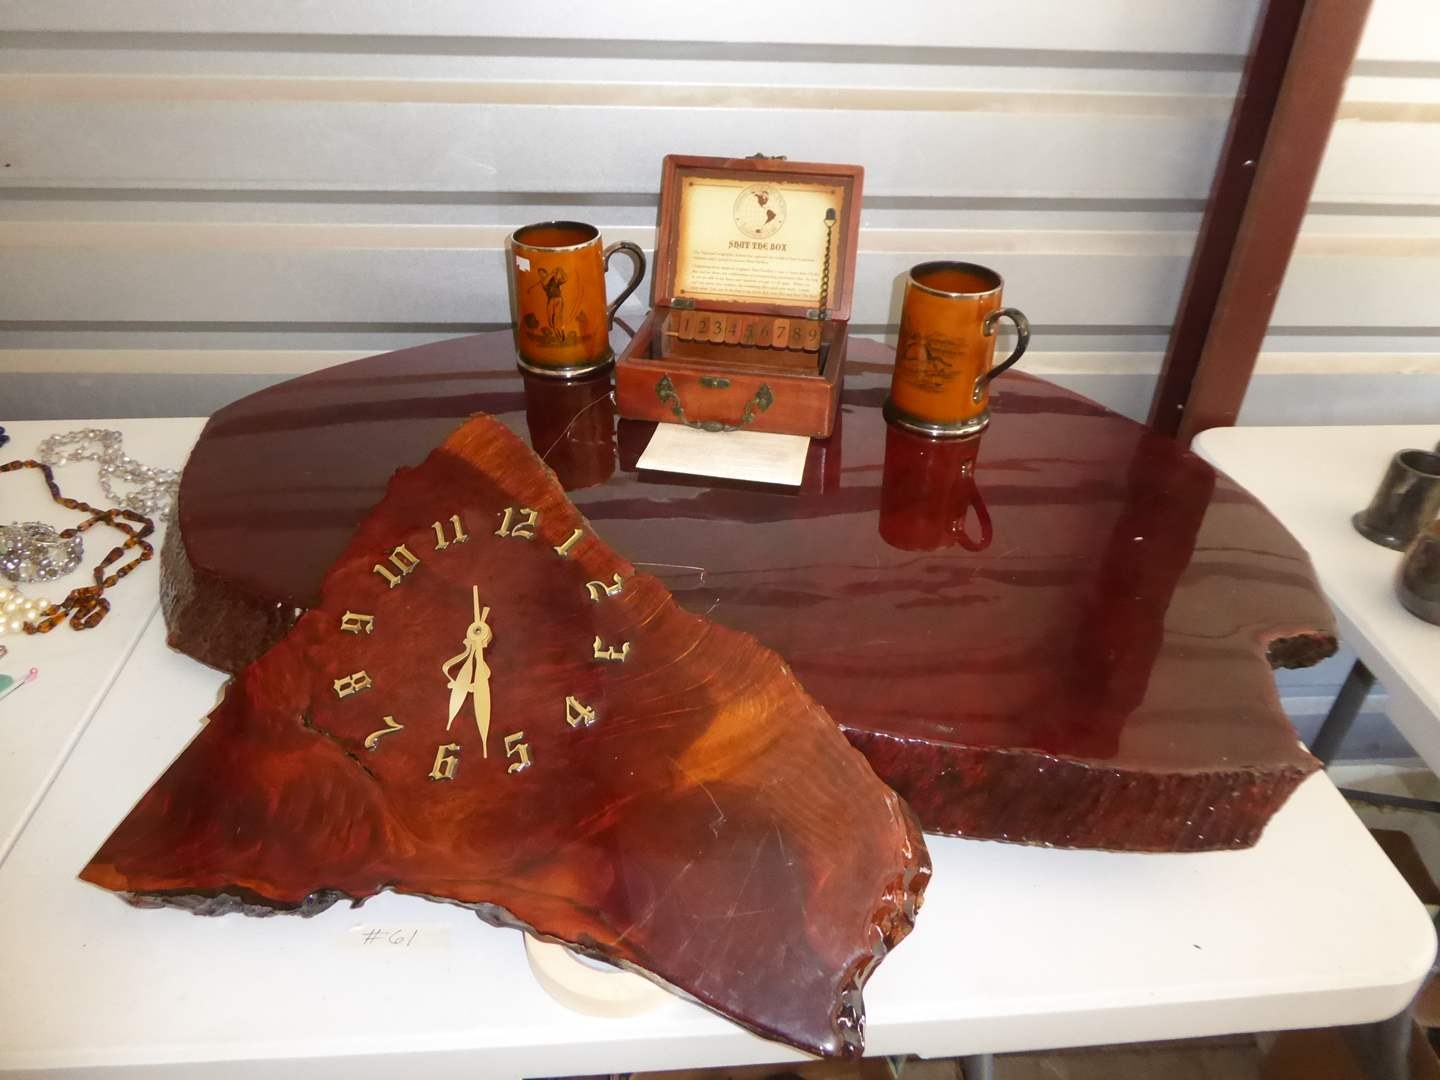 Lot # 61 - Burl Wood Table Top, Burl Wood Clock, Shut The Box Game & Mugs  (main image)